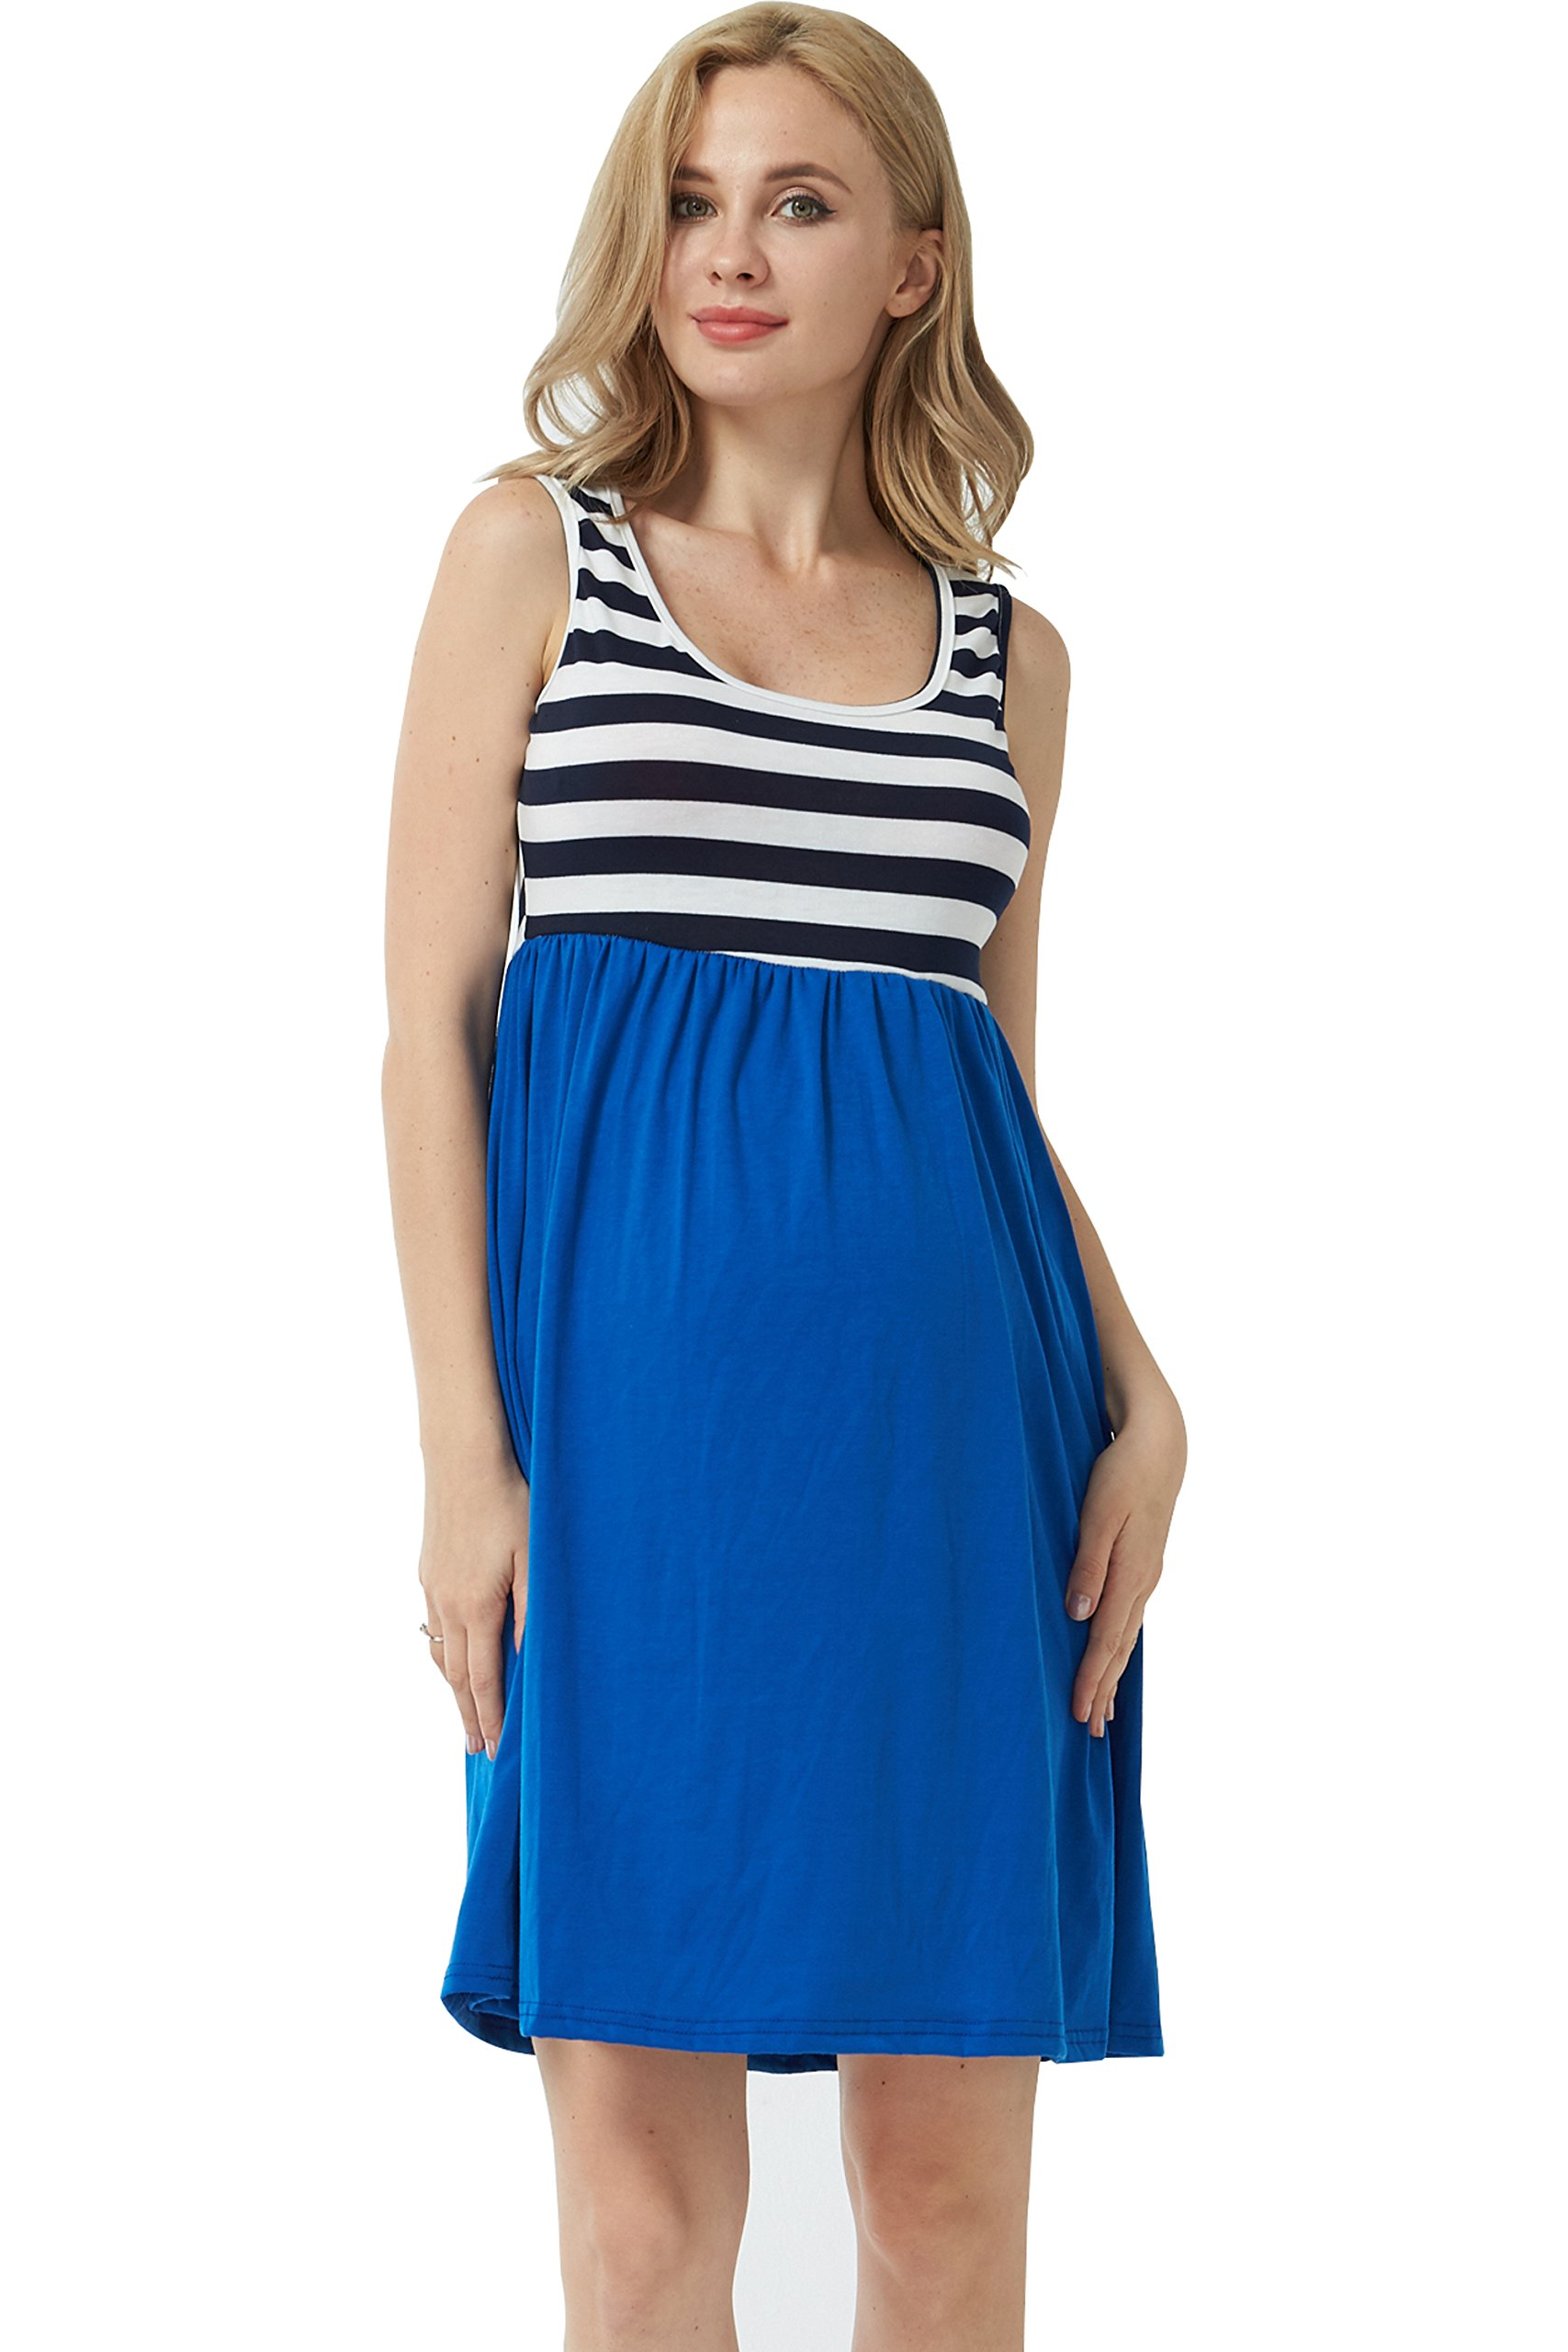 MANNEW Maternity Maxi Dress Pregnancy Tank Tops Knee Length Stitching Color Block Stripe Skirt (Blue, X-Large) by MANNEW (Image #2)